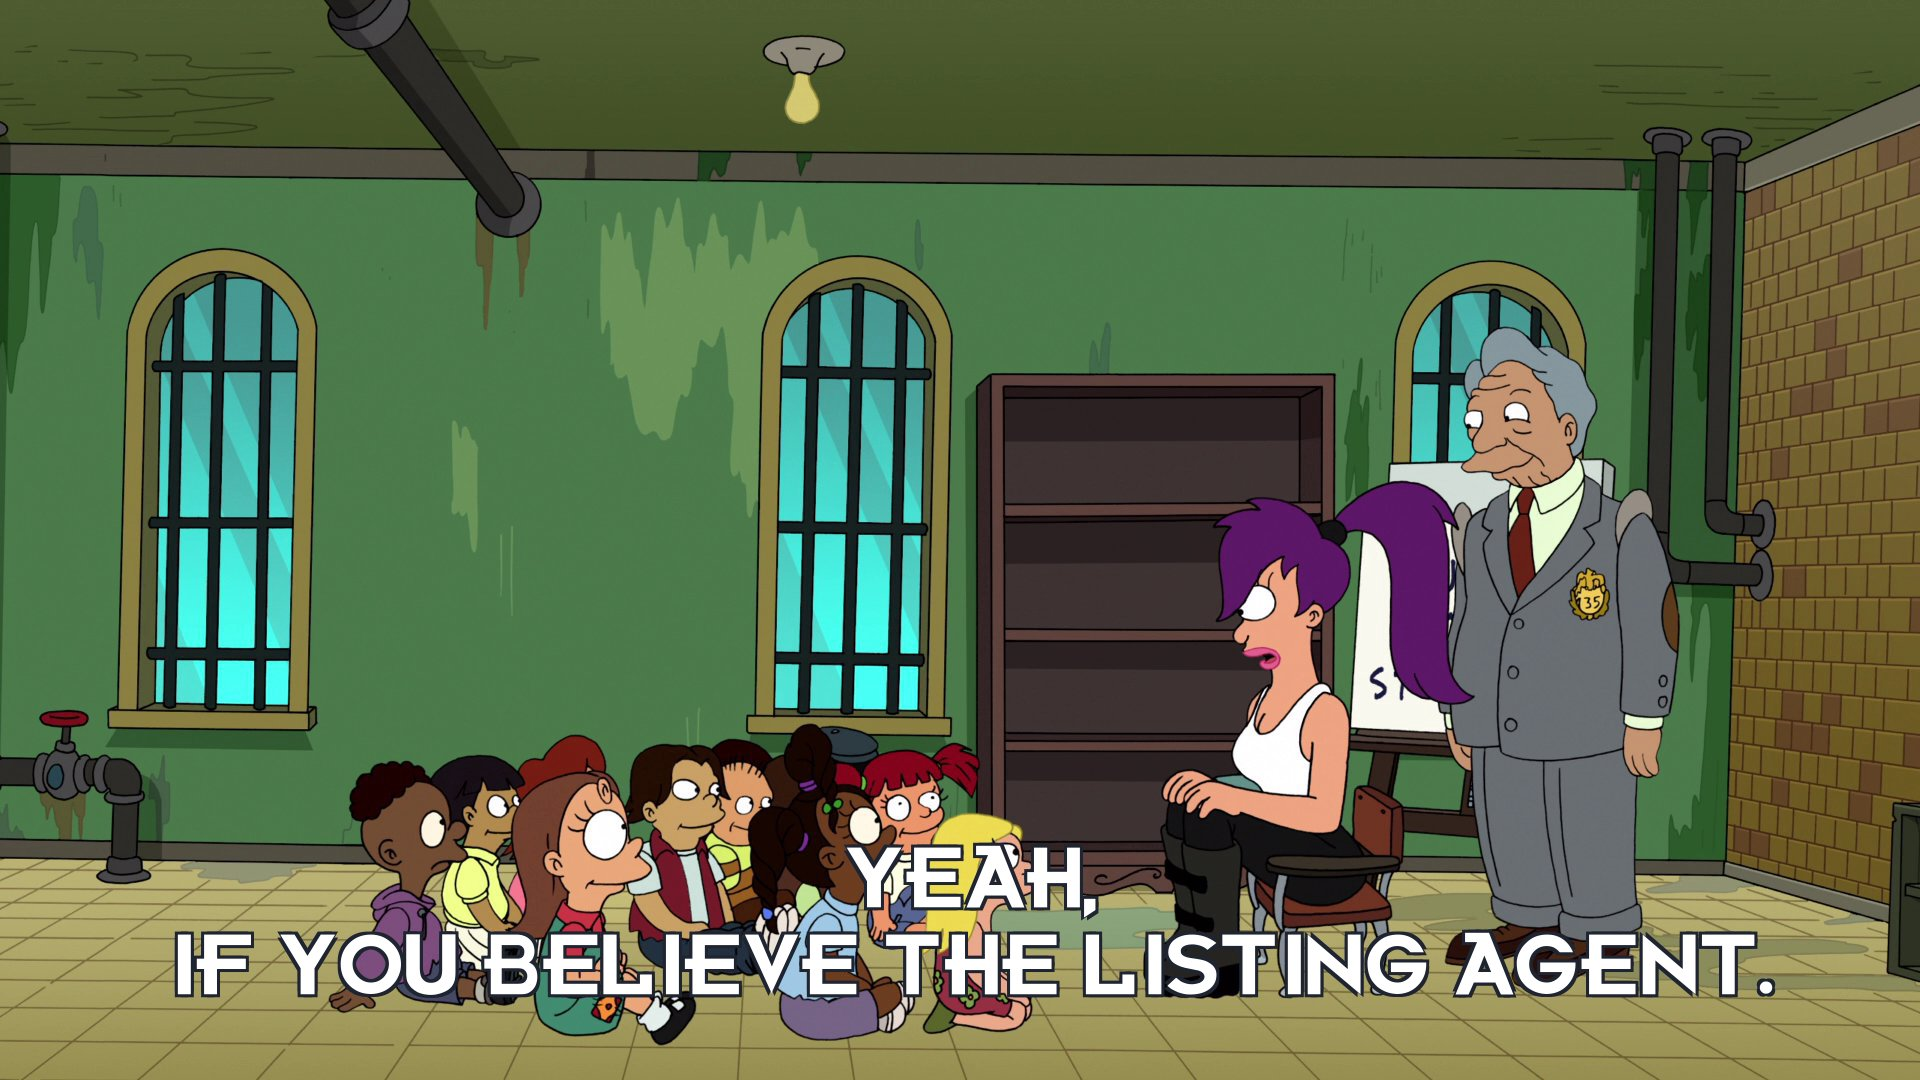 Turanga Leela: Yeah, if you believe the listing agent.